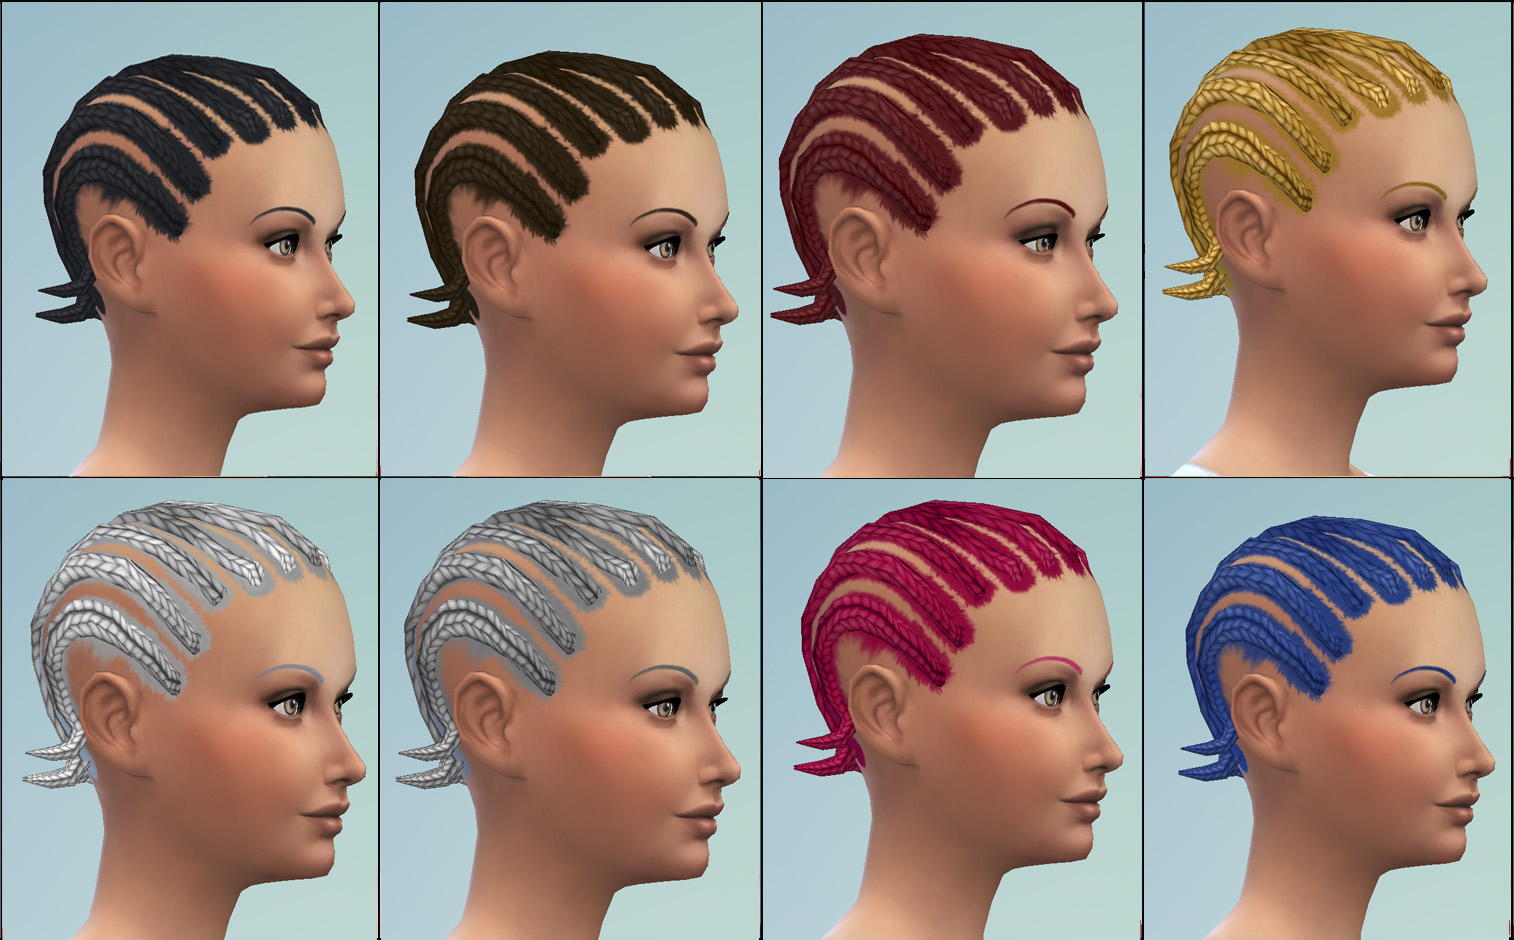 Sims 4 Hairs Mod The Sims Short Cornrows Hairstyle By